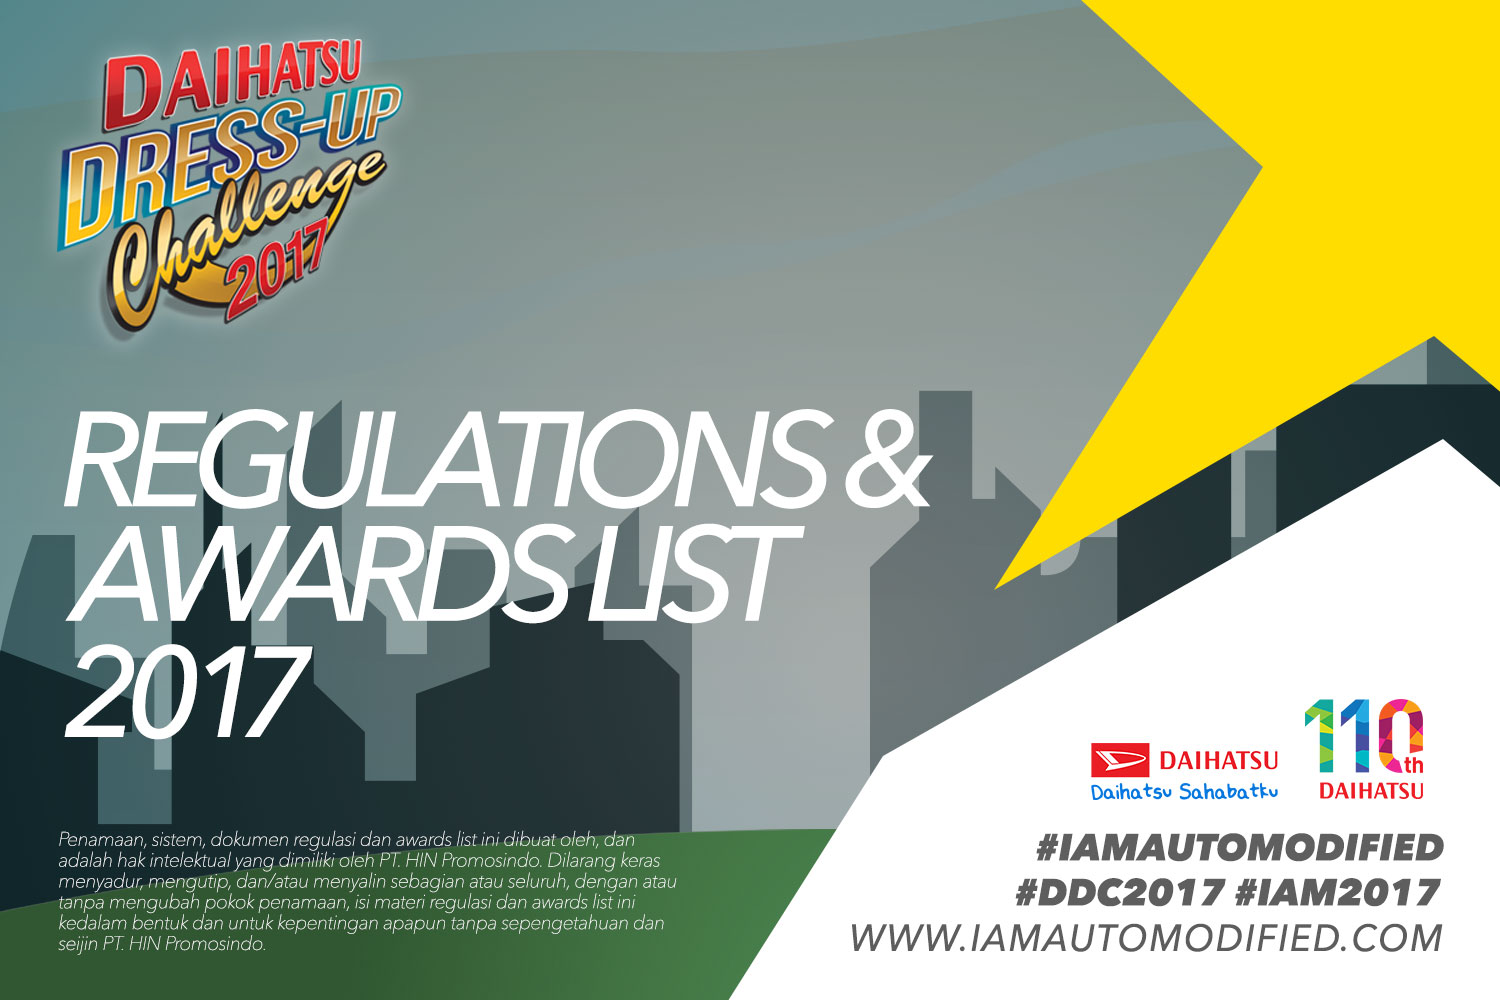 ddc regulations awards